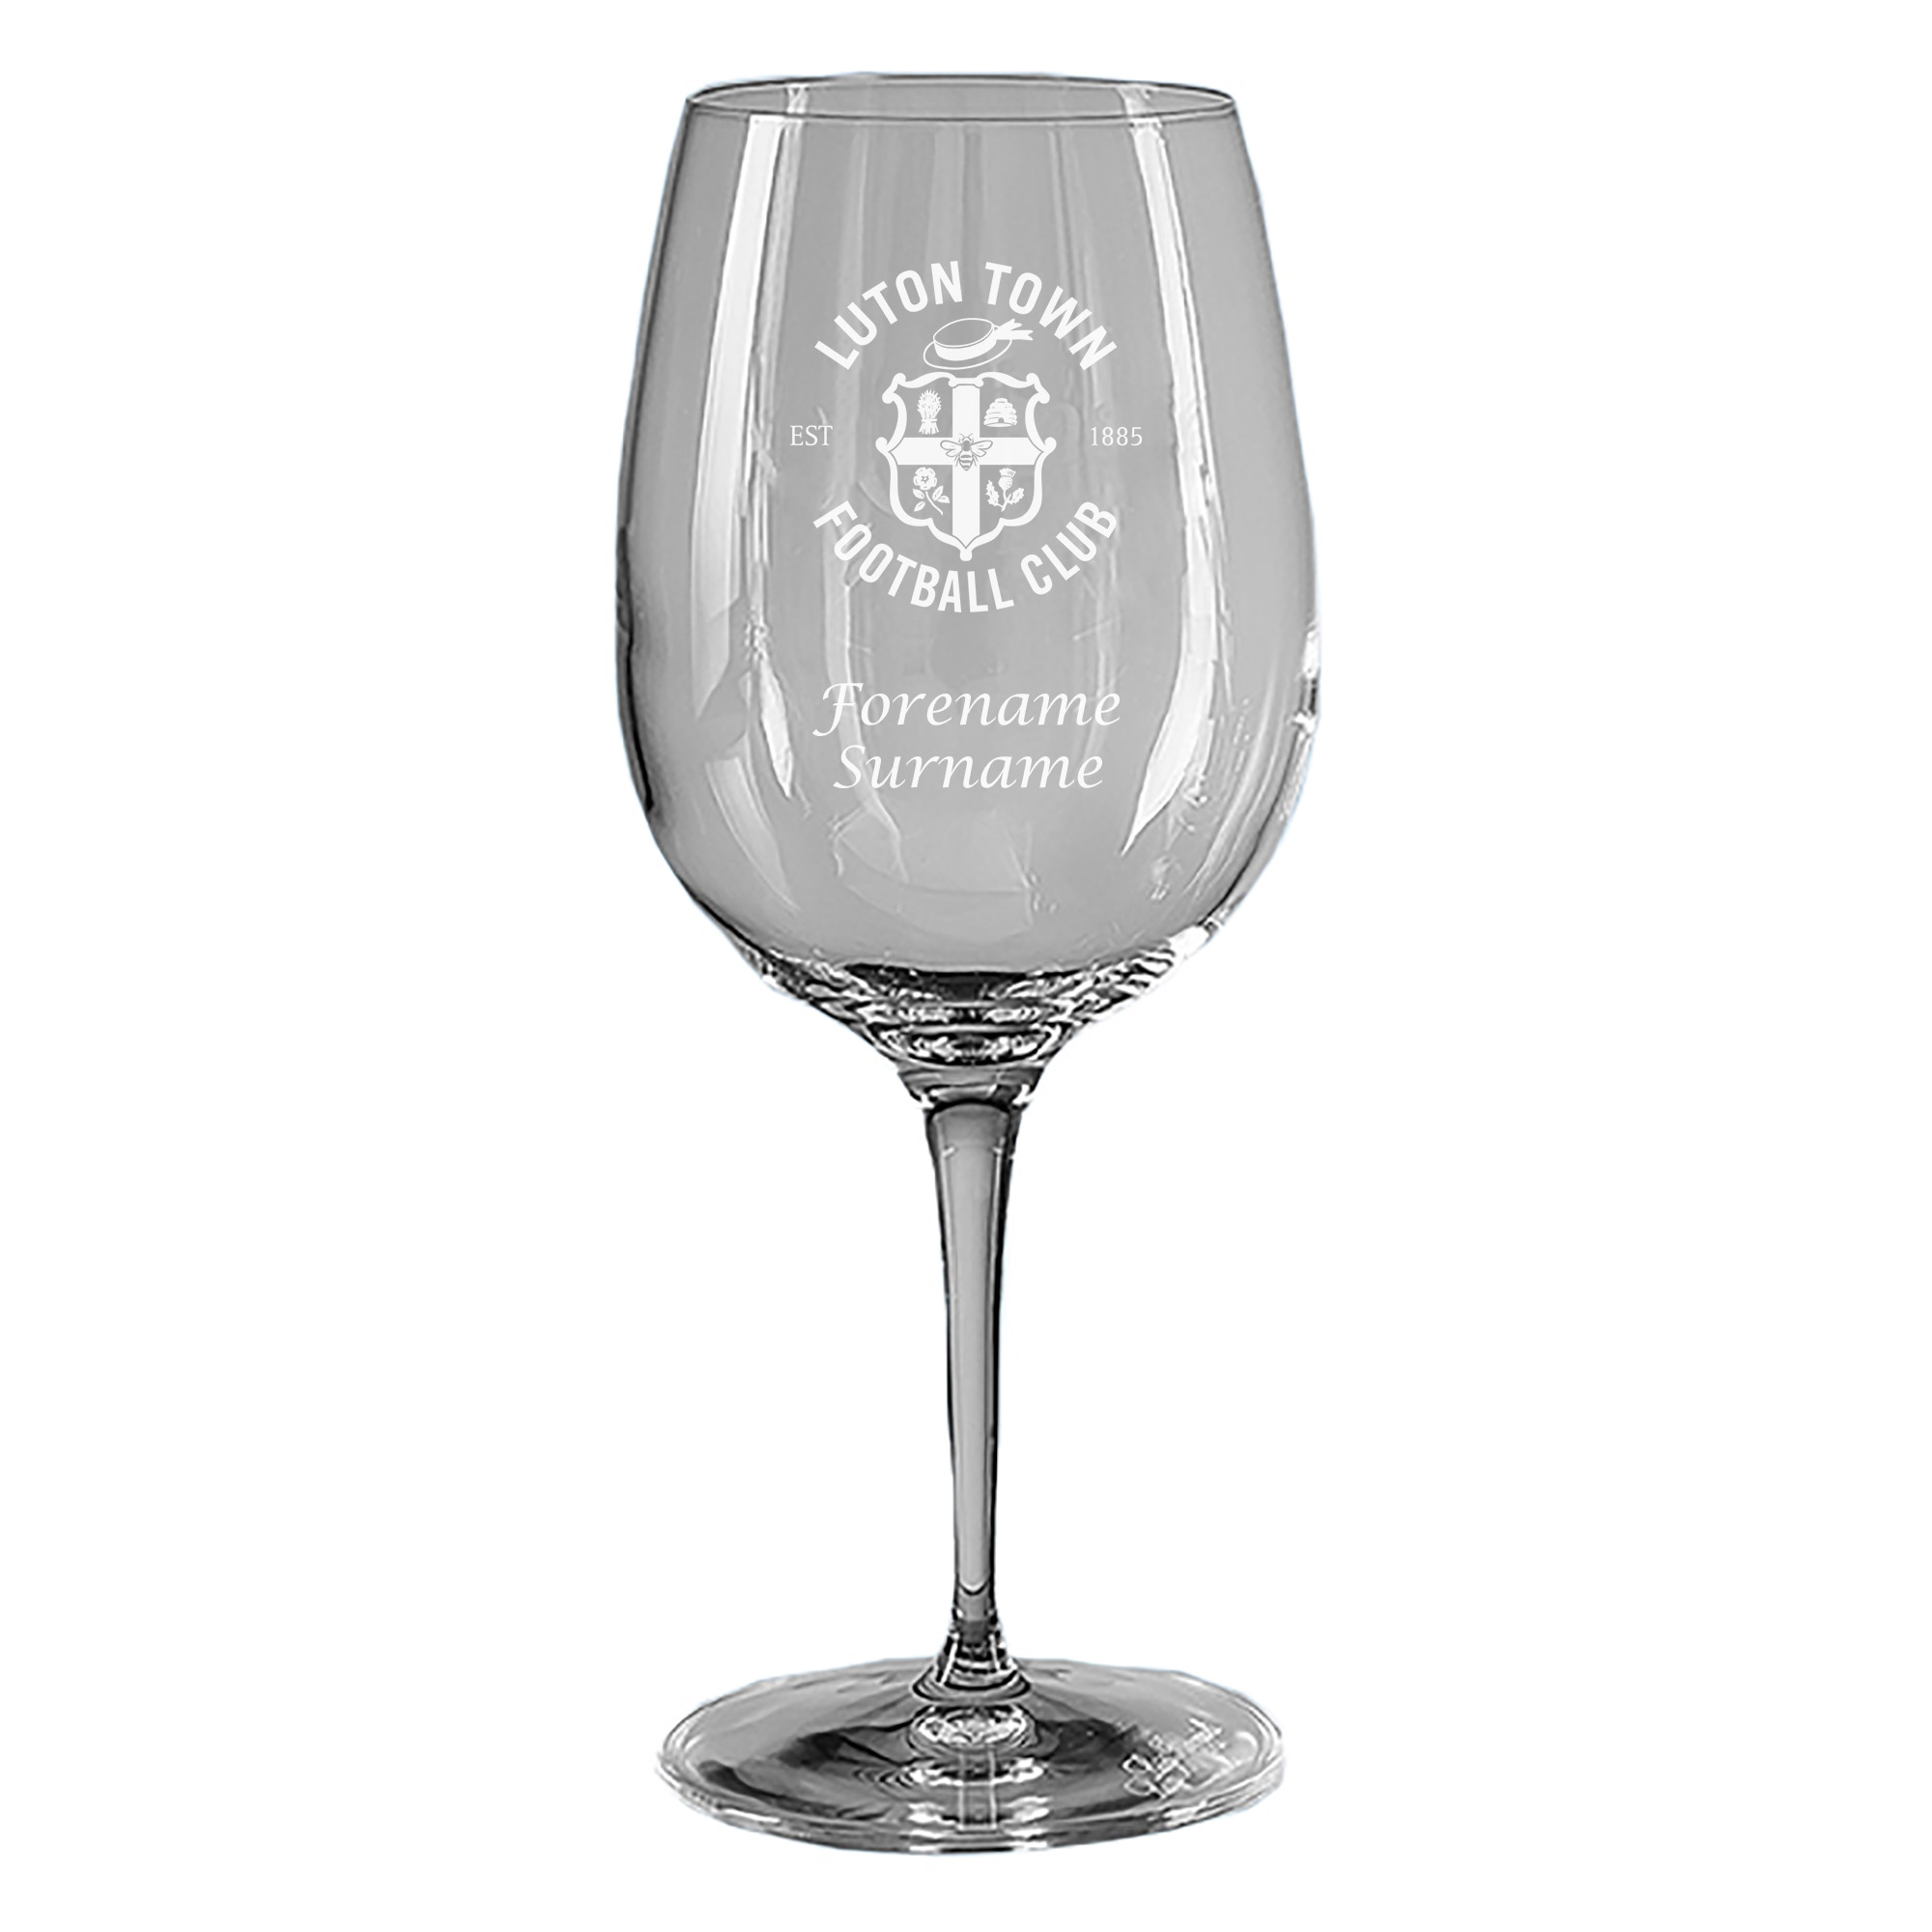 Luton Town FC Personalised Crest Wine Glass